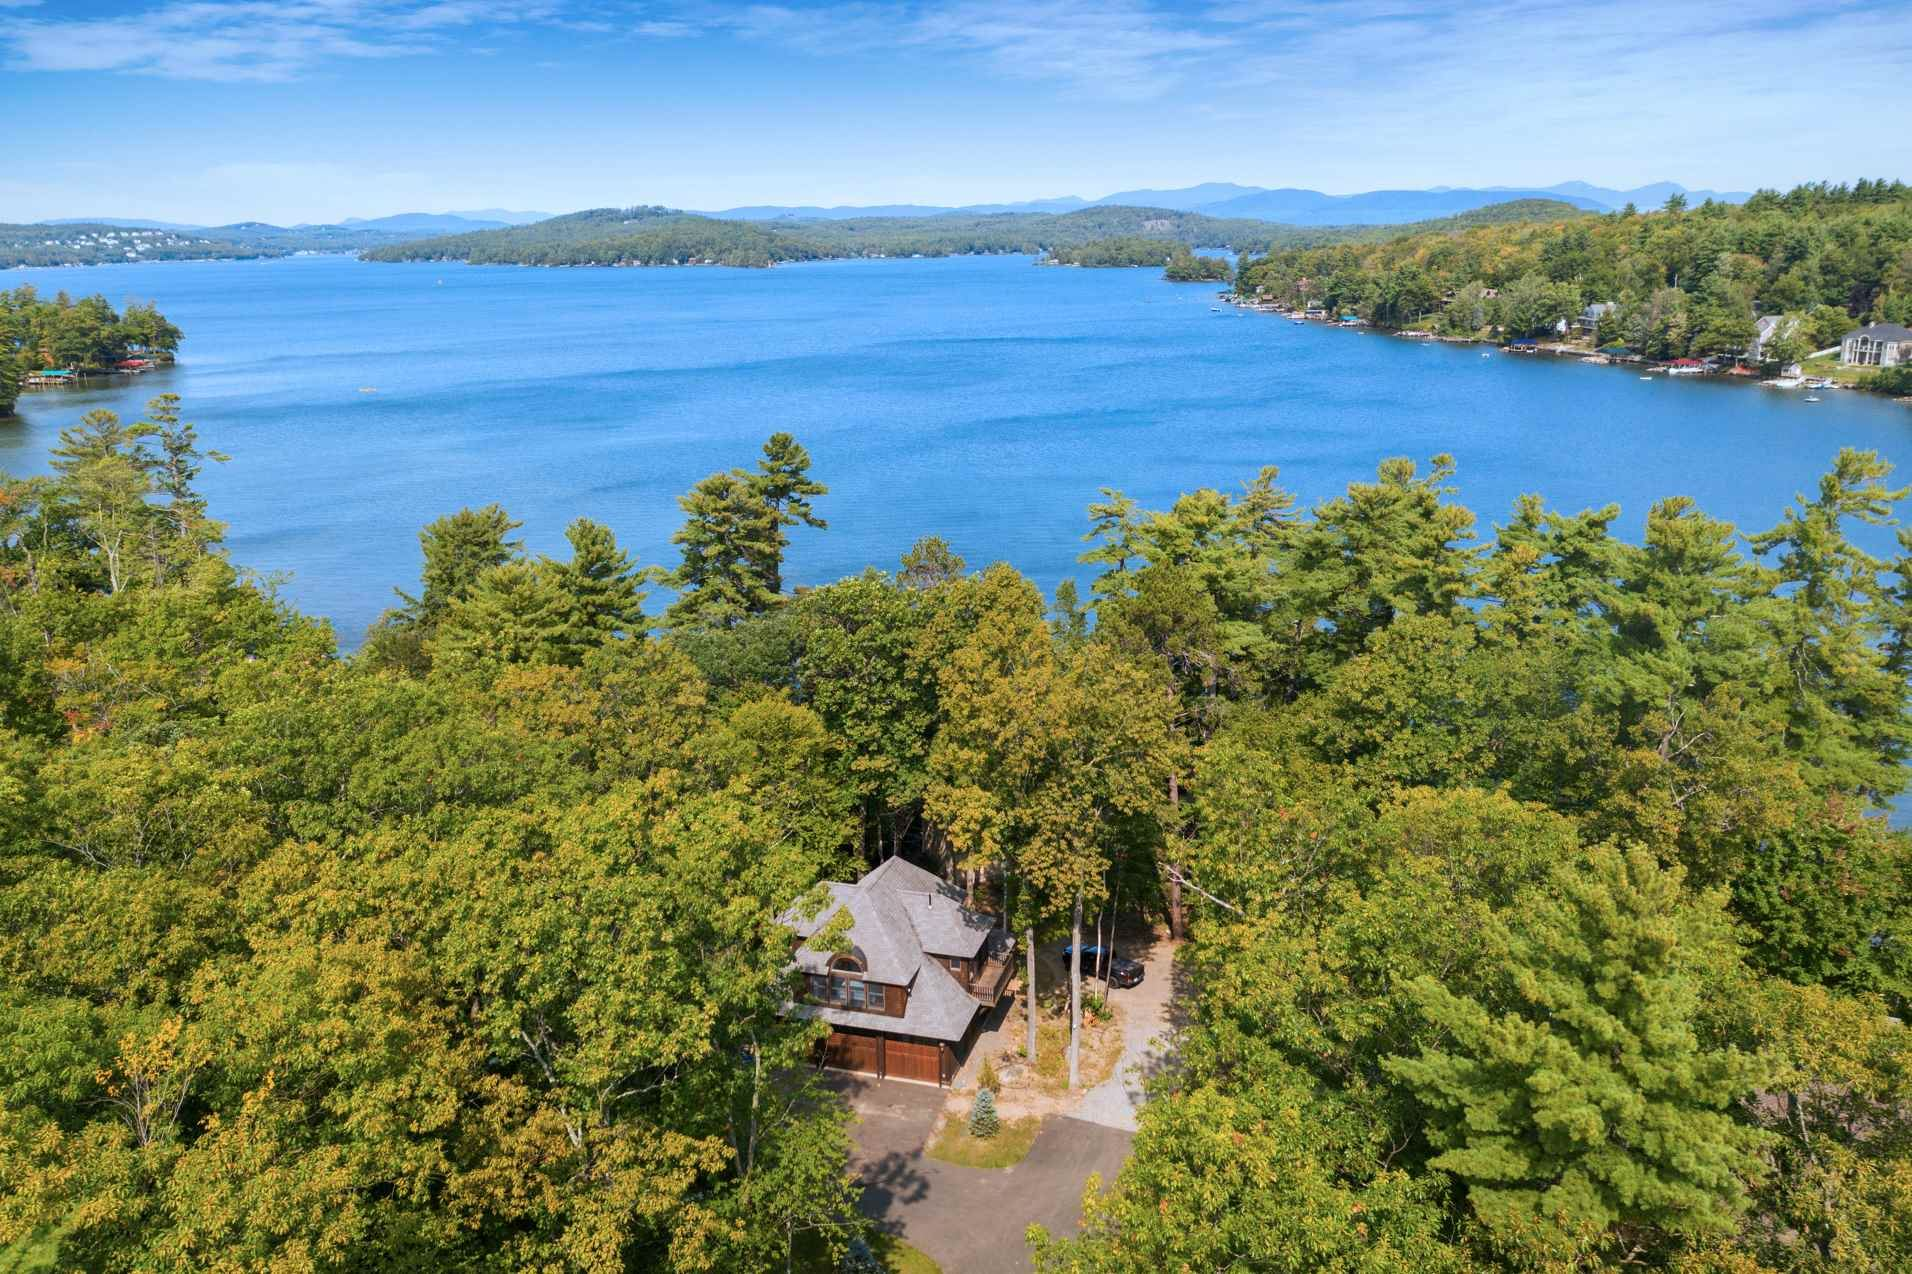 191 Wentworth Cove Road, Laconia, NH 03246 - #: 4795158